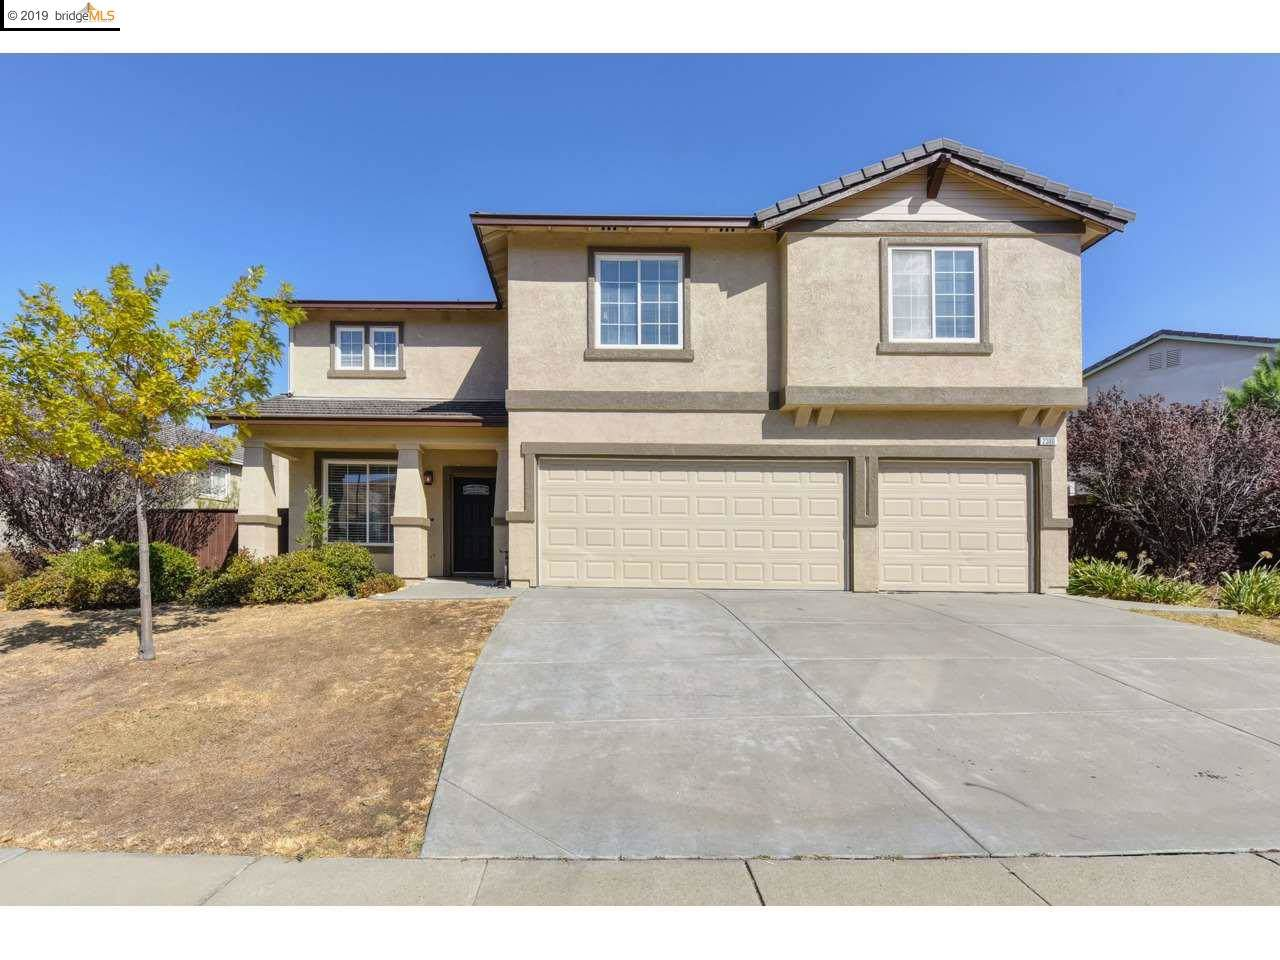 2380 Woodhill Dr - Photo 1